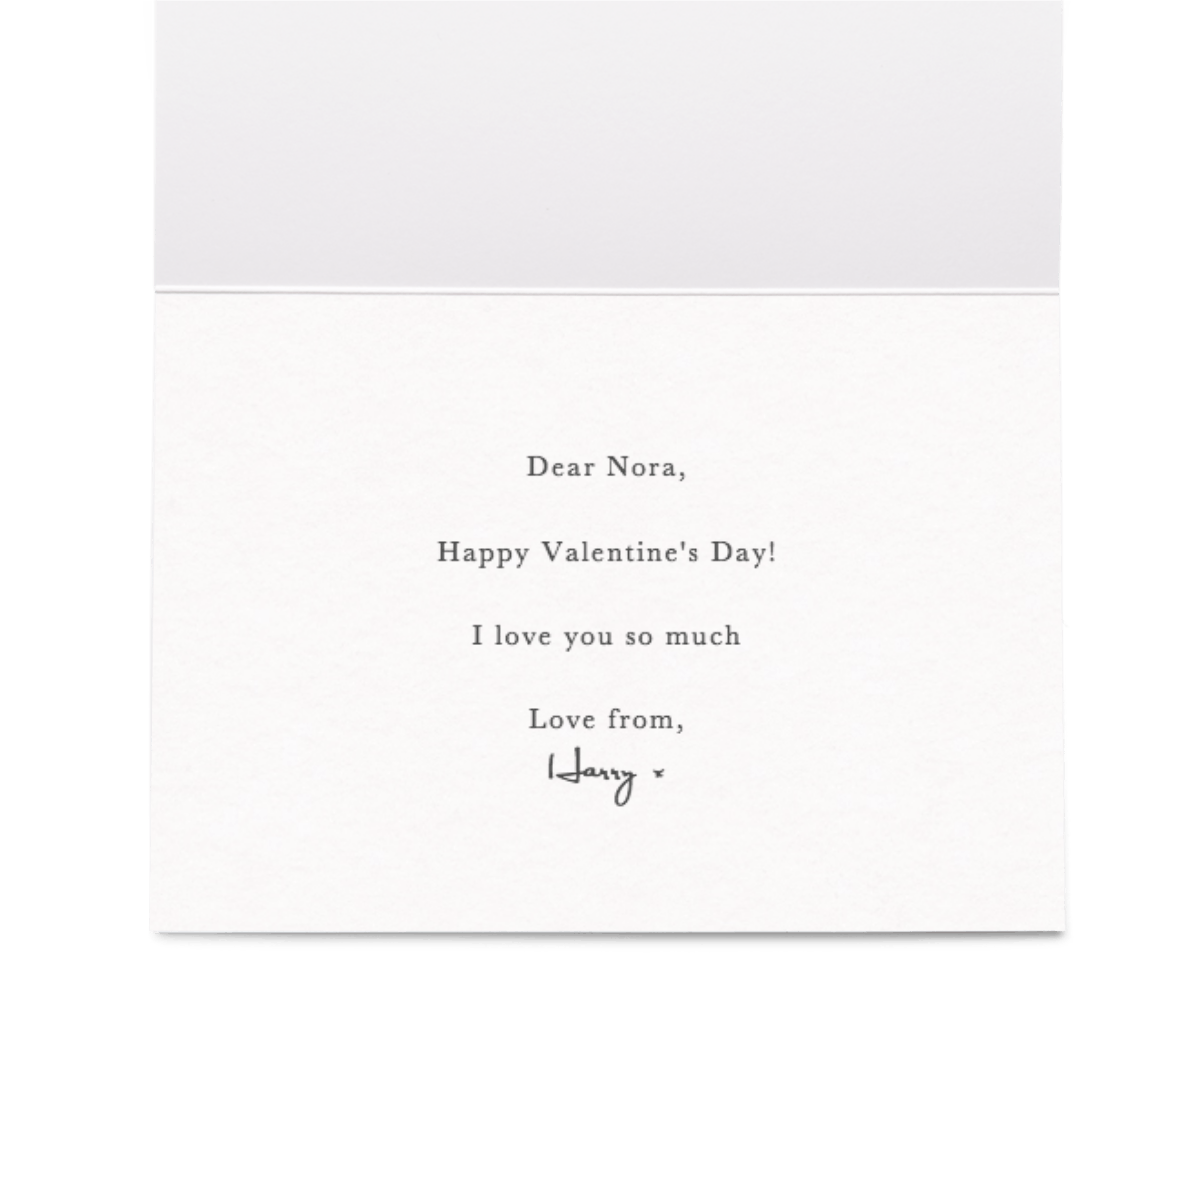 Https%3a%2f%2fwww.papier.com%2fproduct image%2f27549%2f20%2fpaperheart valentine 6869 inside 1504627649.png?ixlib=rb 1.1